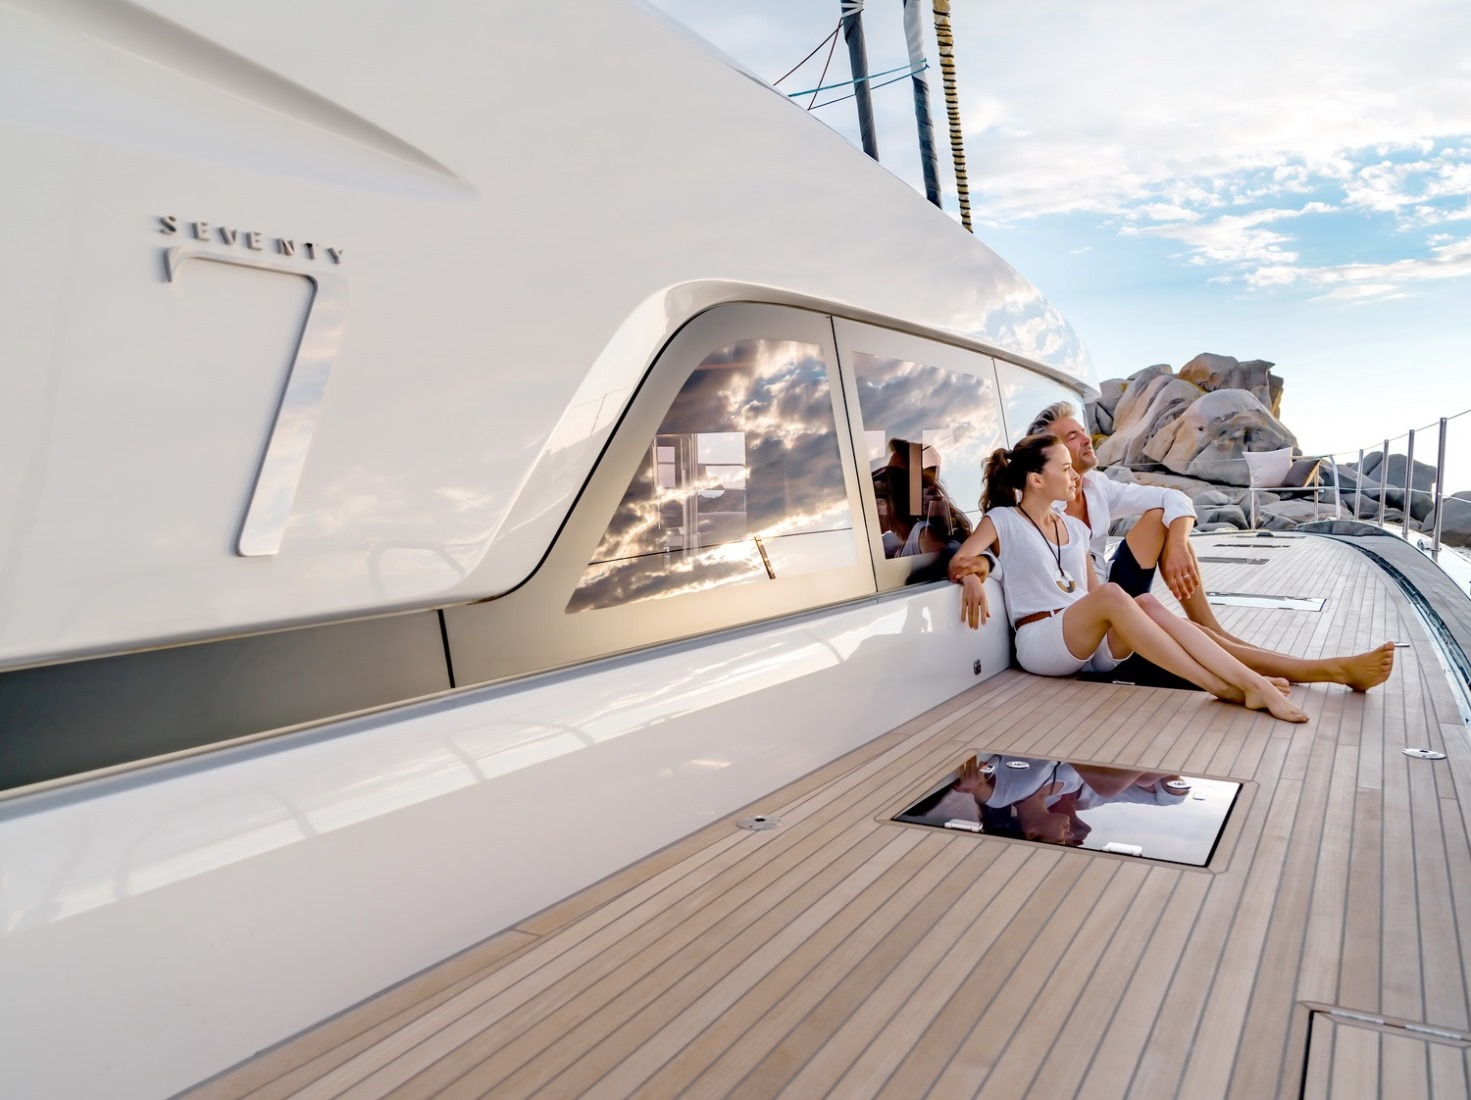 Enjoy a fantastic Caribbean vacation this winter and join the luxurious yacht charter world